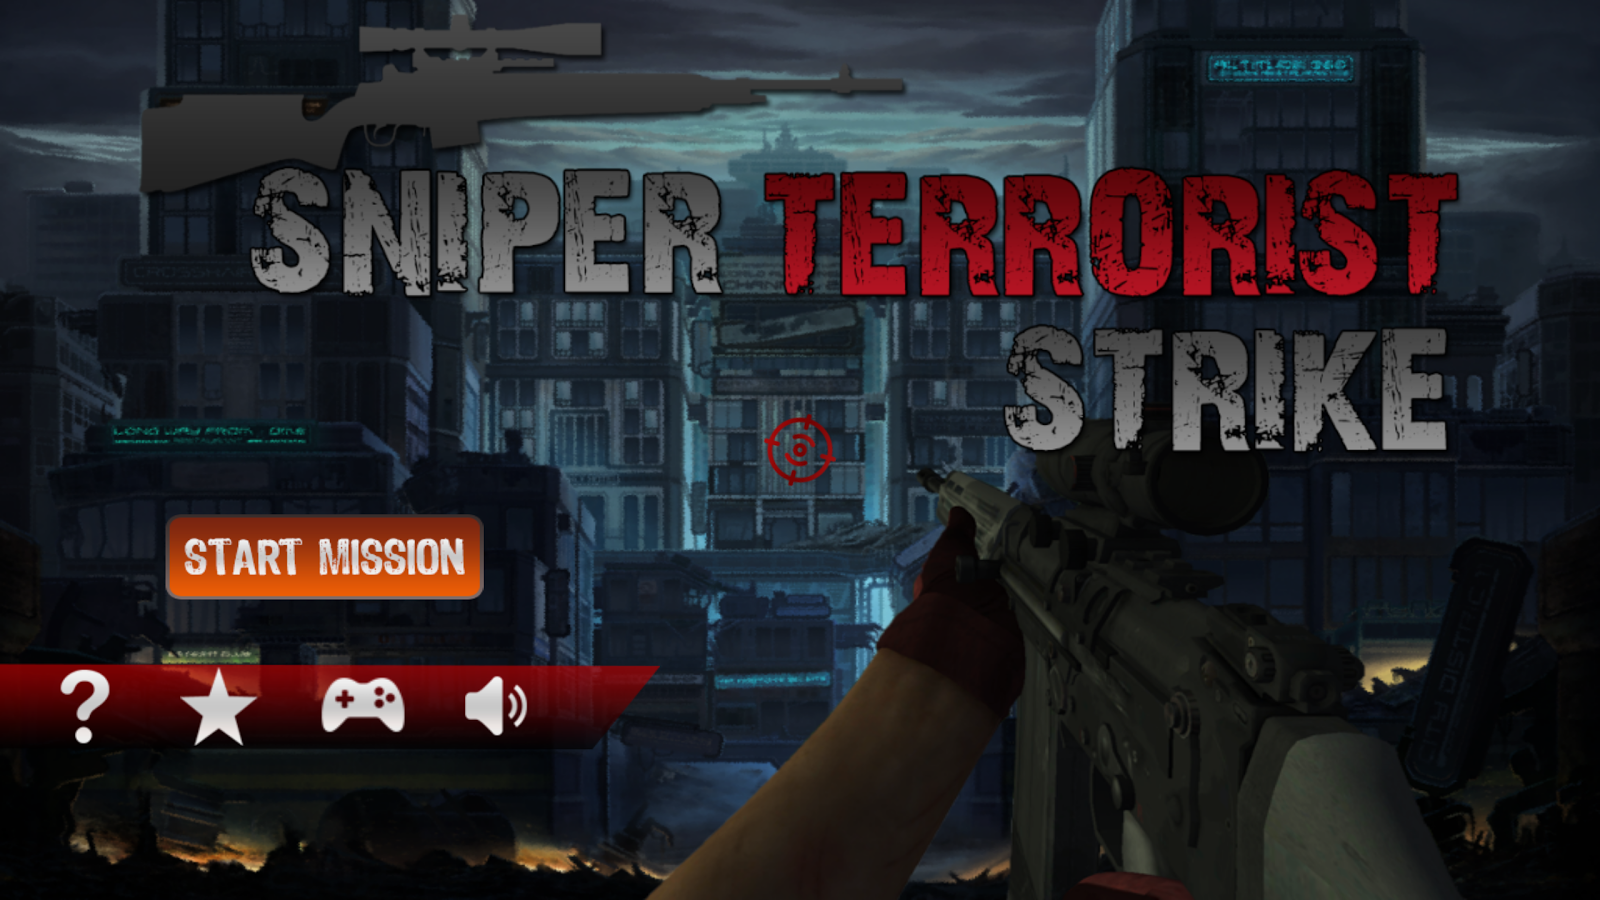 Sniper Terrorist Strike Screenshot